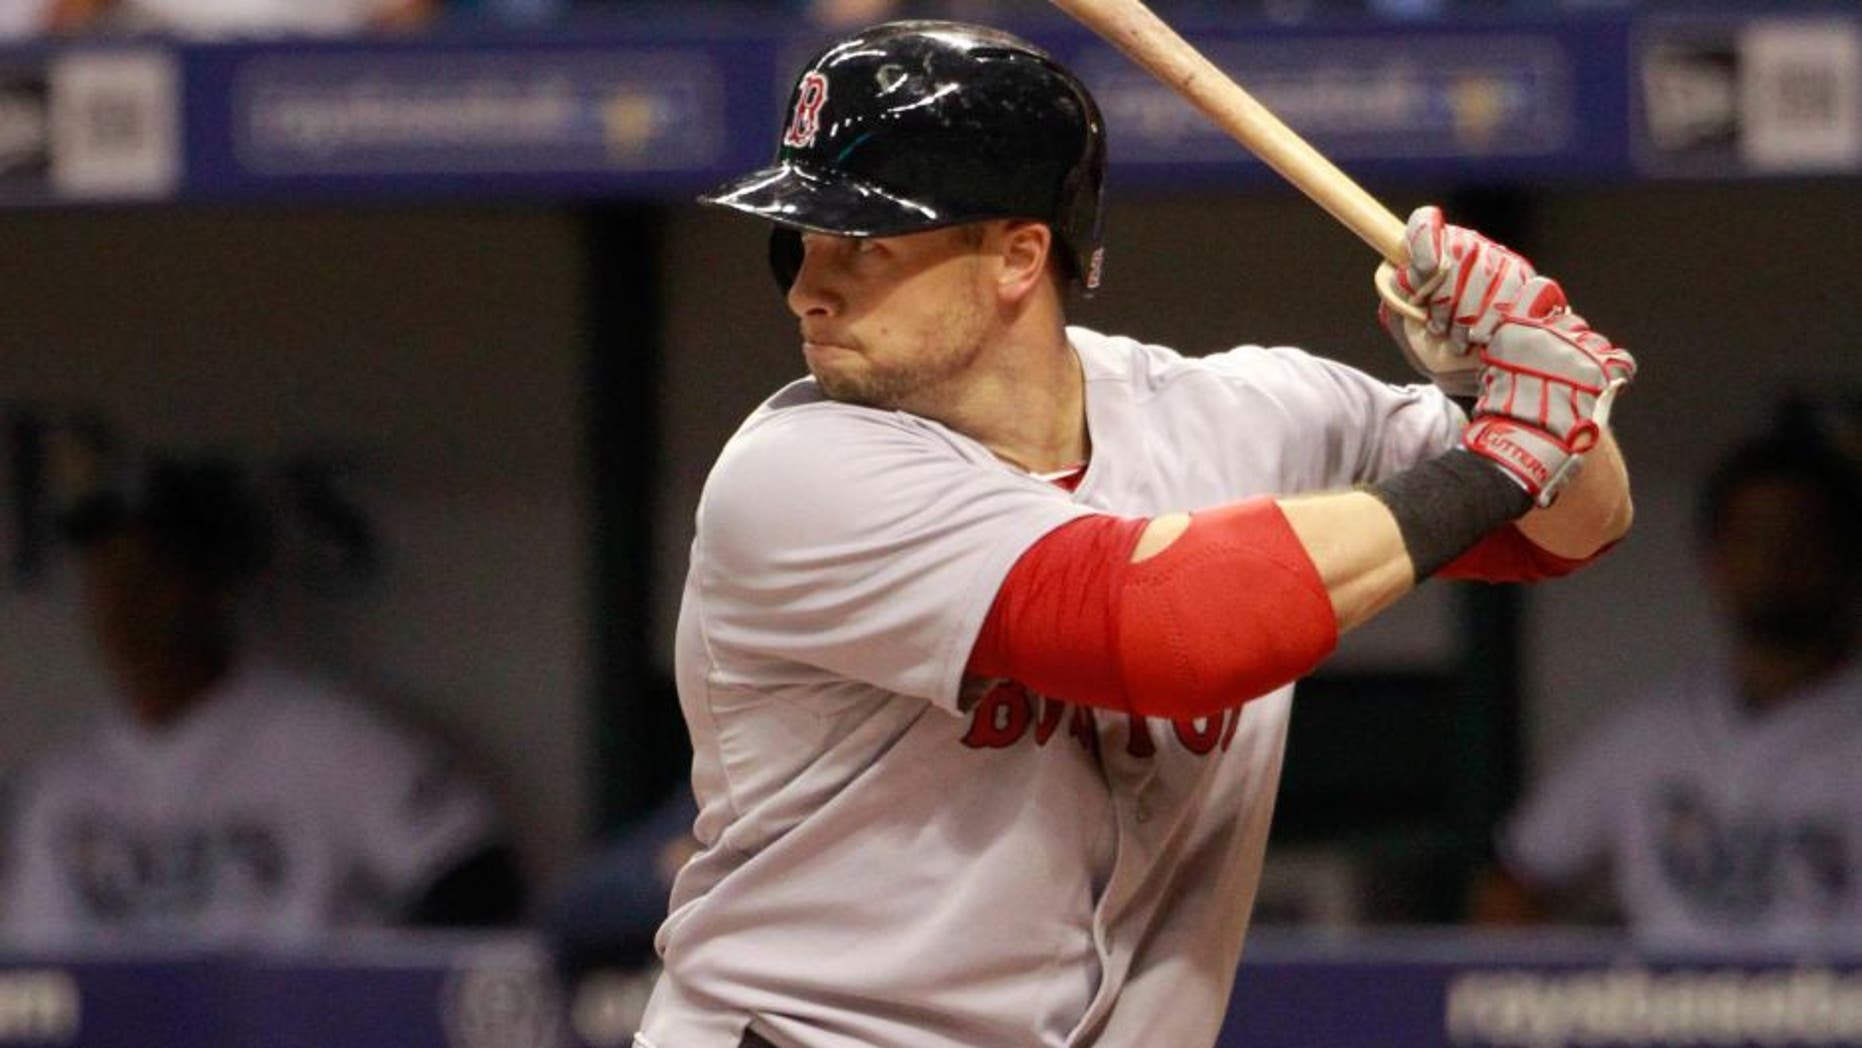 Apr 21, 2015; St. Petersburg, FL, USA; Boston Red Sox right fielder Daniel Nava (29) at bat against the Tampa Bay Rays at Tropicana Field. Mandatory Credit: Kim Klement-USA TODAY Sports